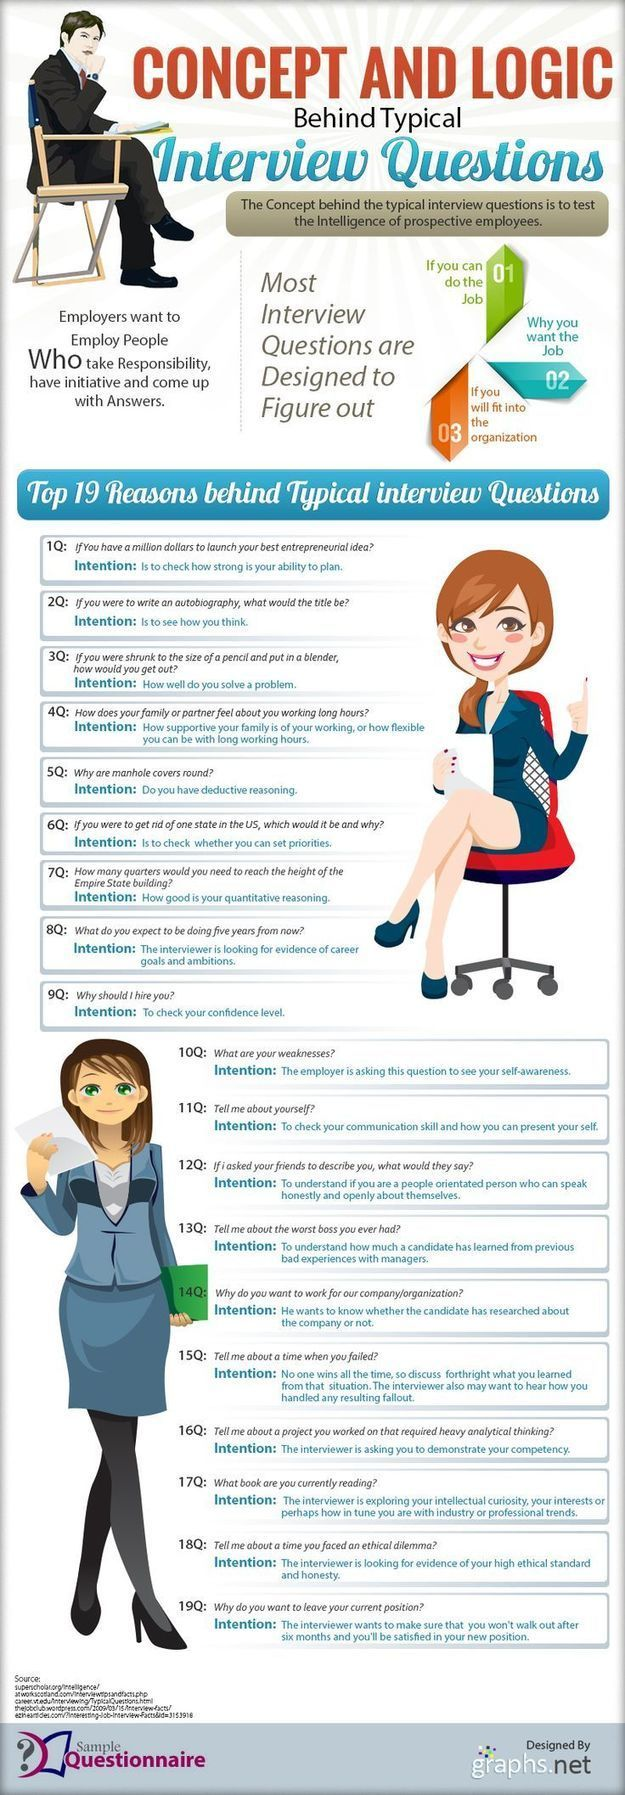 17 best images about job interview questions logic behind interview questions